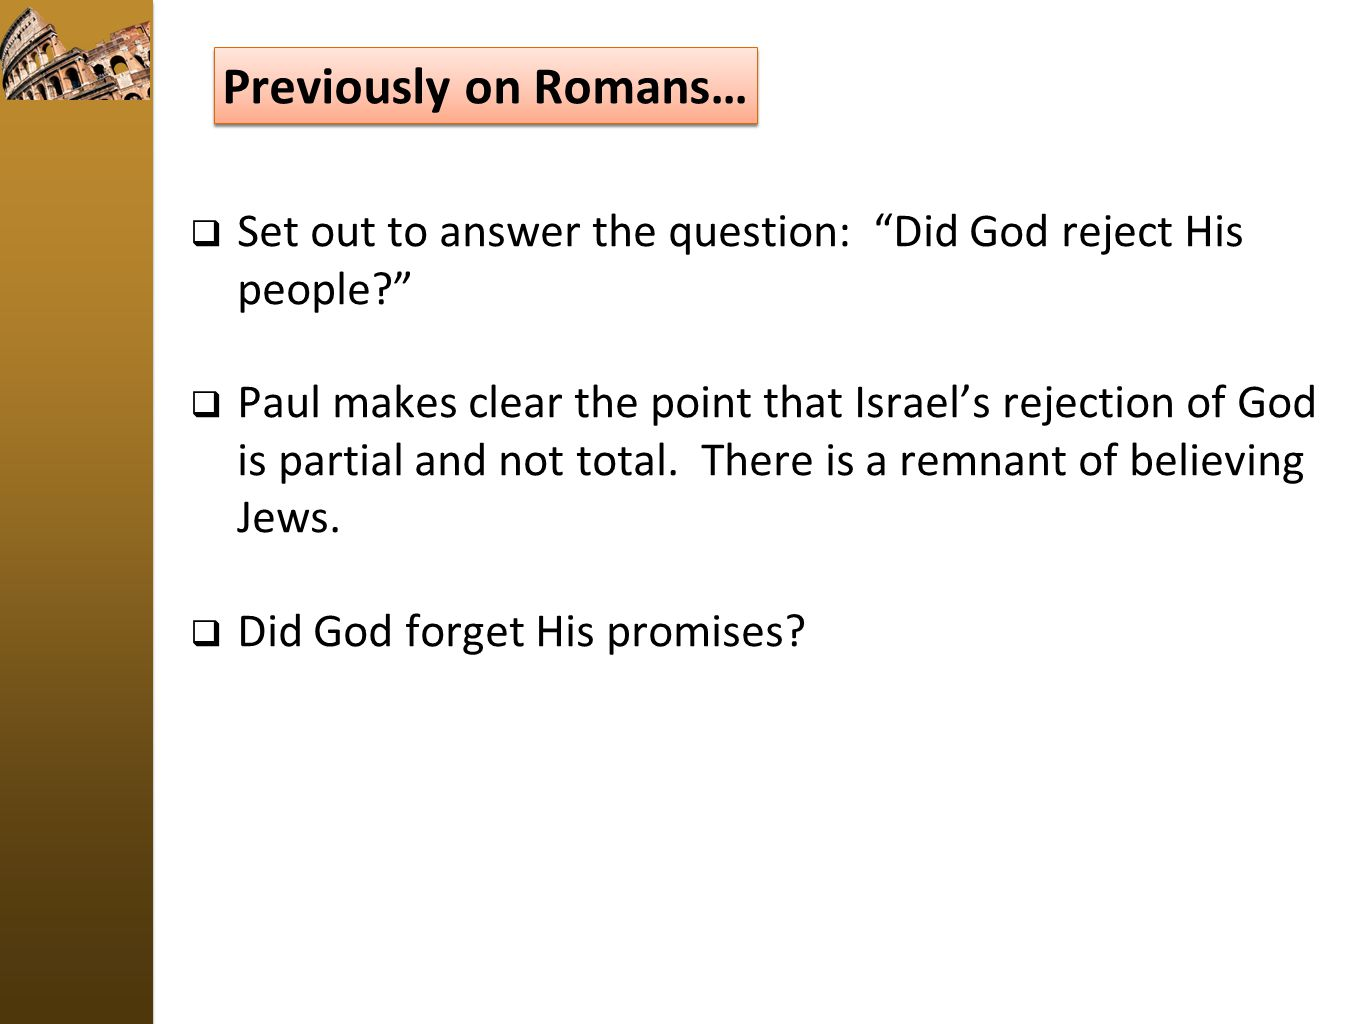 God's Plan for Israel (Romans 11:11-15) God has a greater purpose in allowing Israel to reject Him.